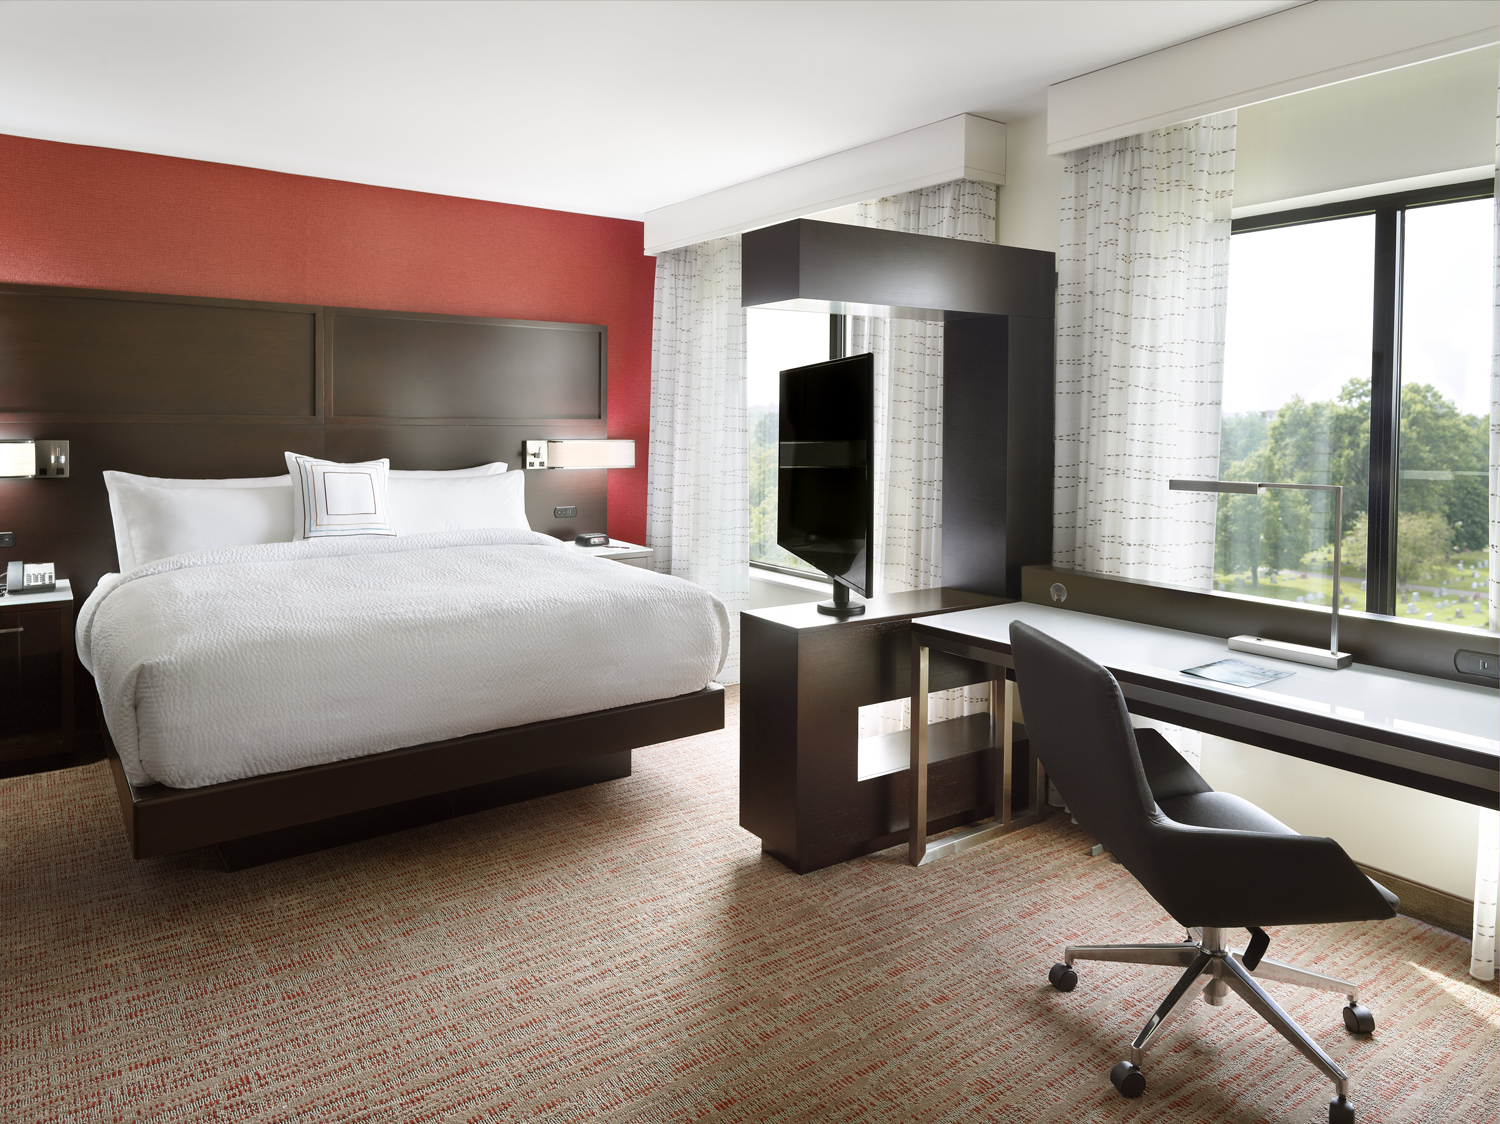 residence-inn-studio-bedroom.jpg